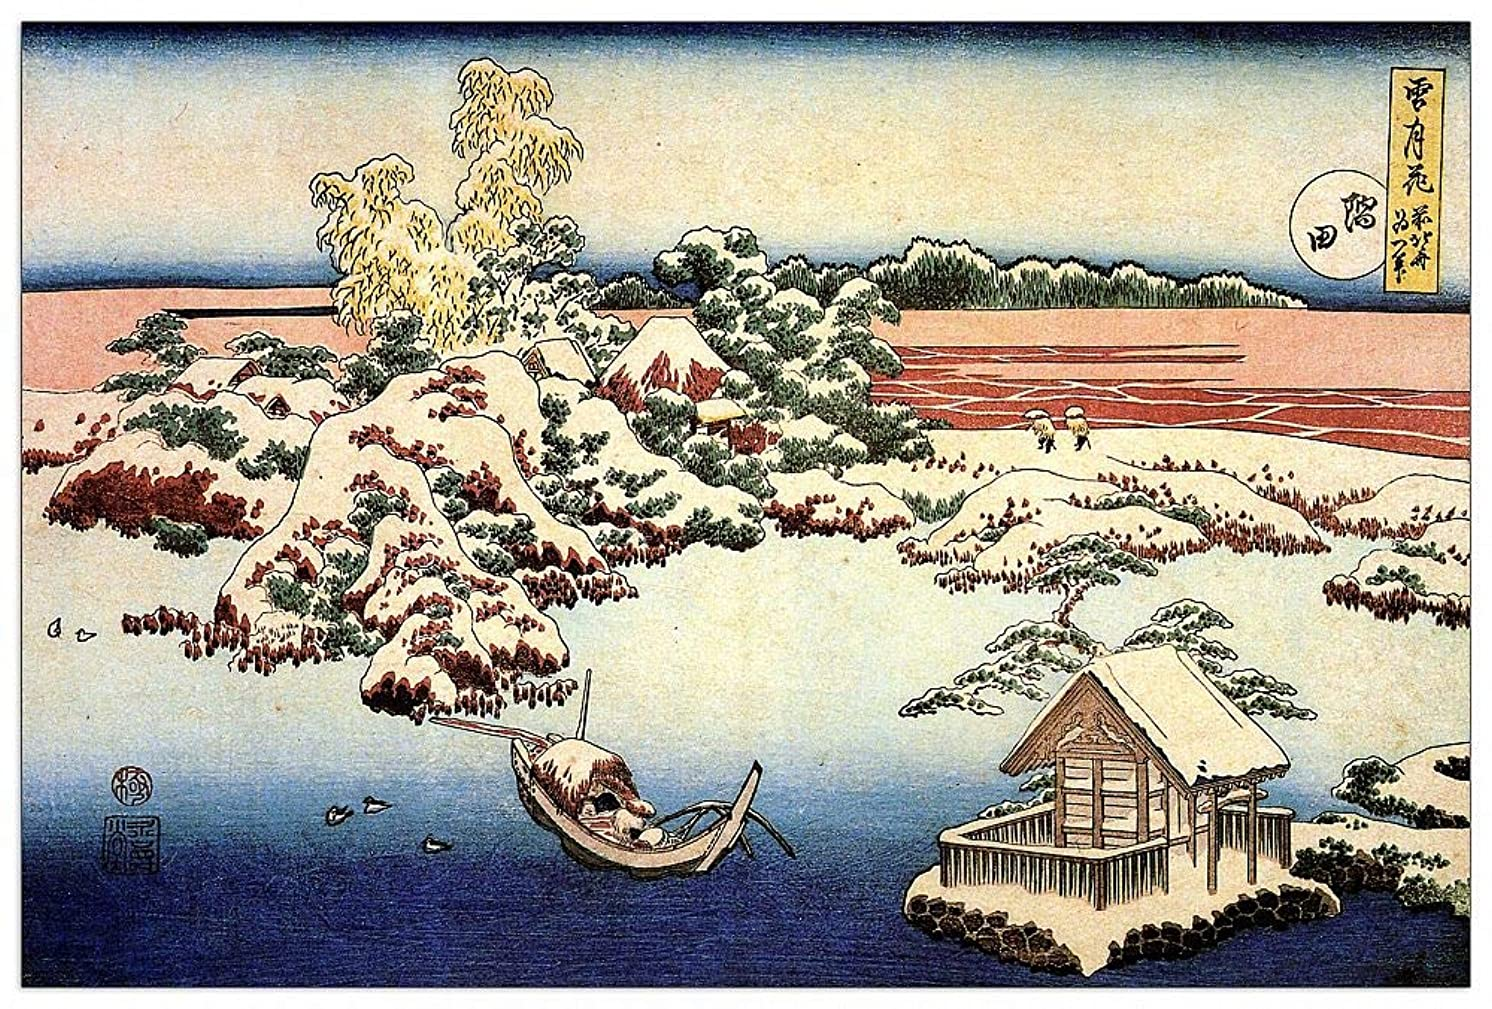 ArtPlaza TW90209 Hokusai Katsushika - Winter Landscape of Suda Decorative Panel 39.5x27.5 Inch Multicolored